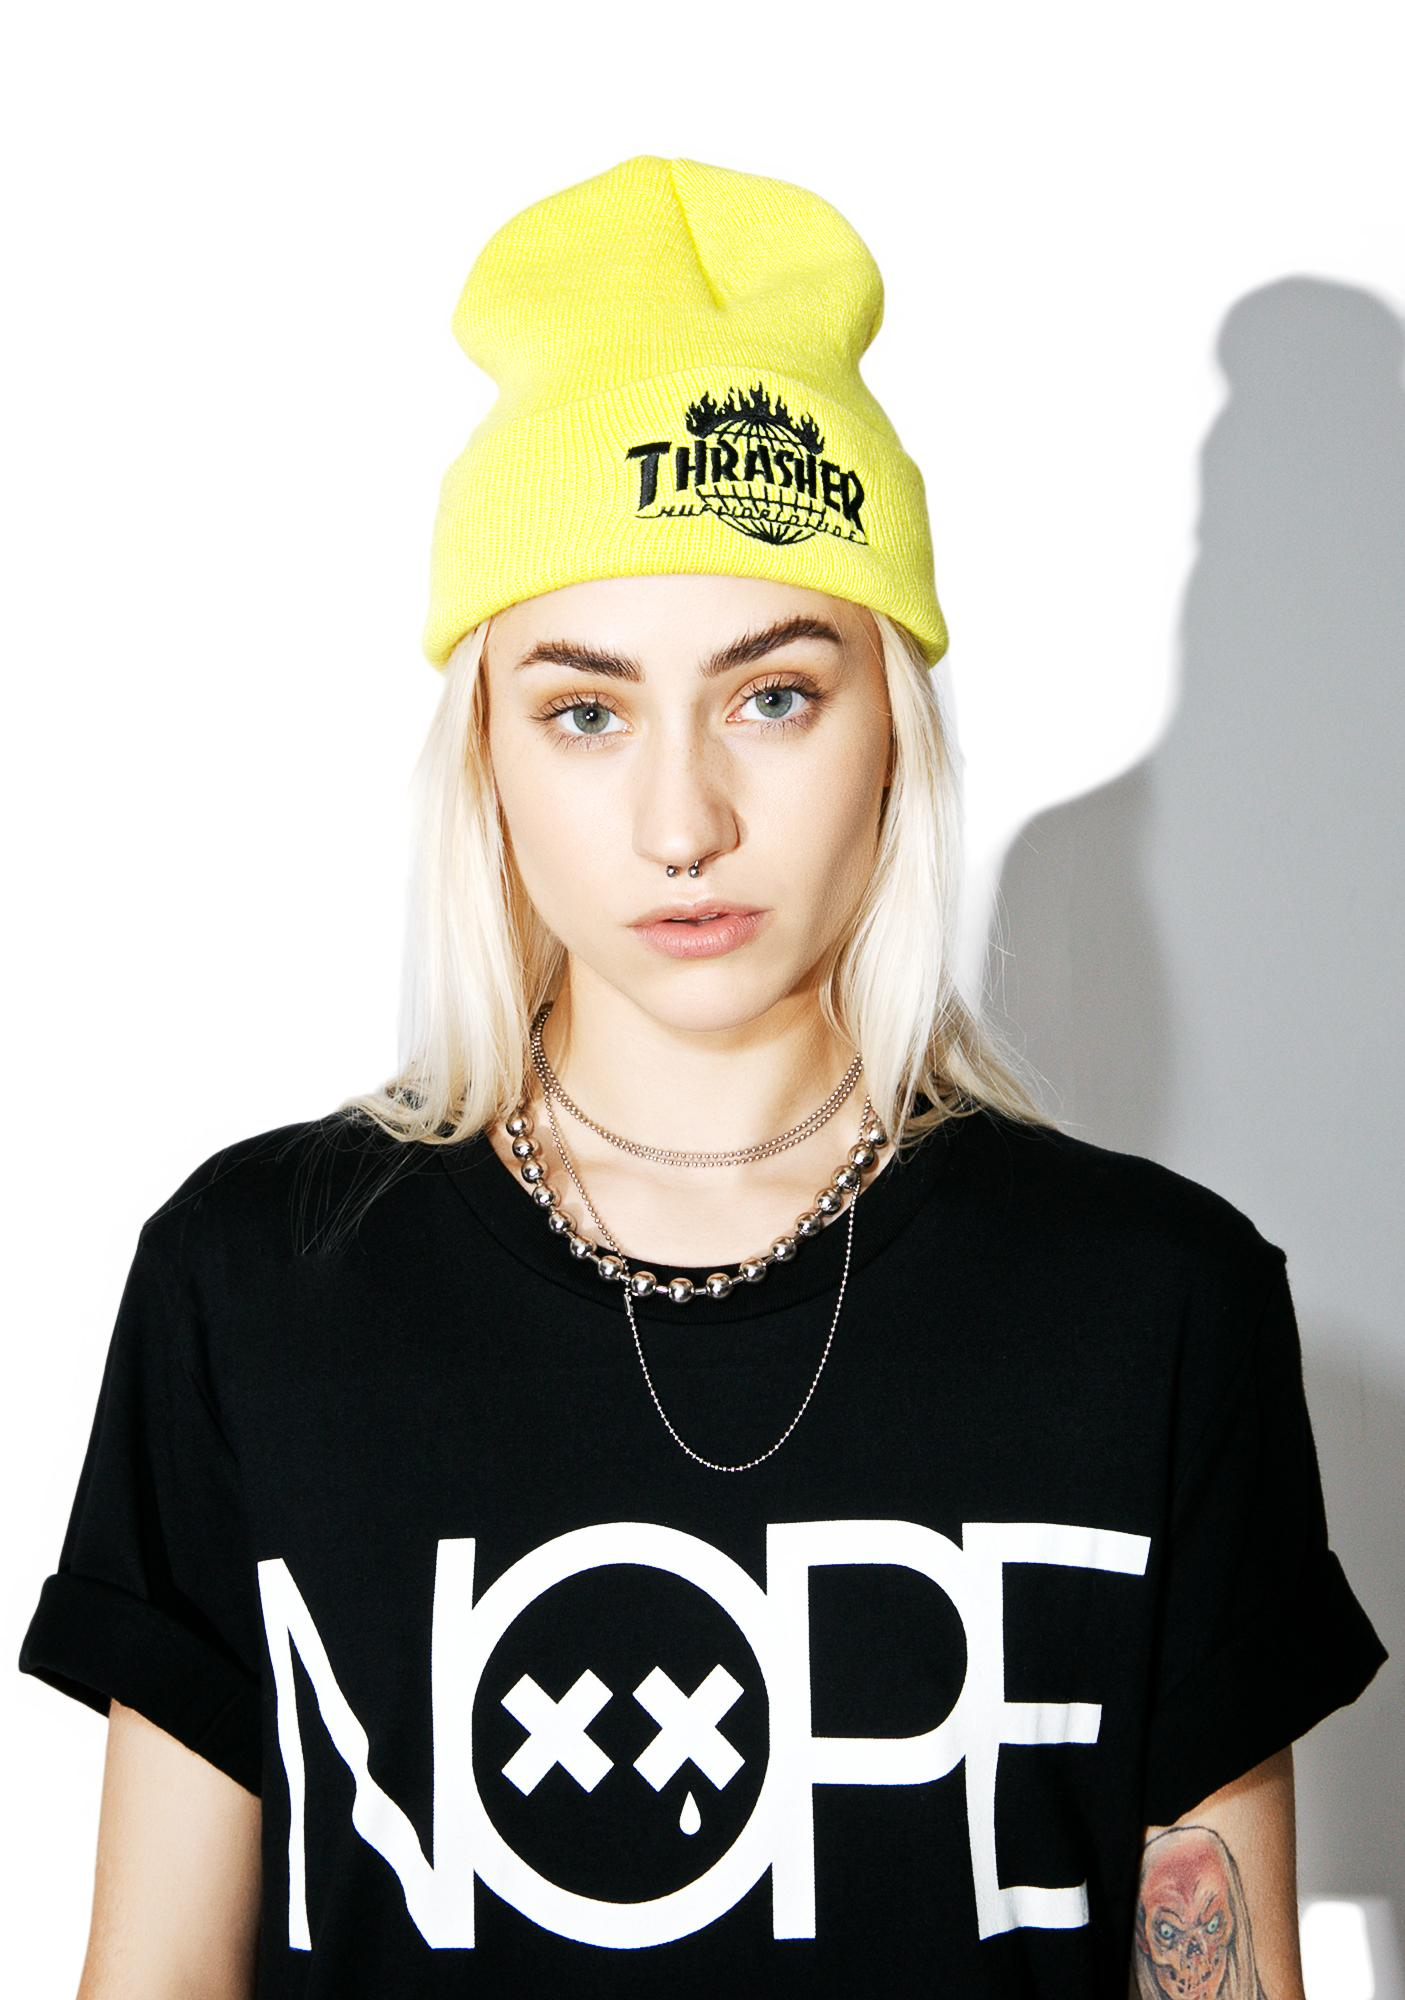 Sad Boy Crew Nope Tee